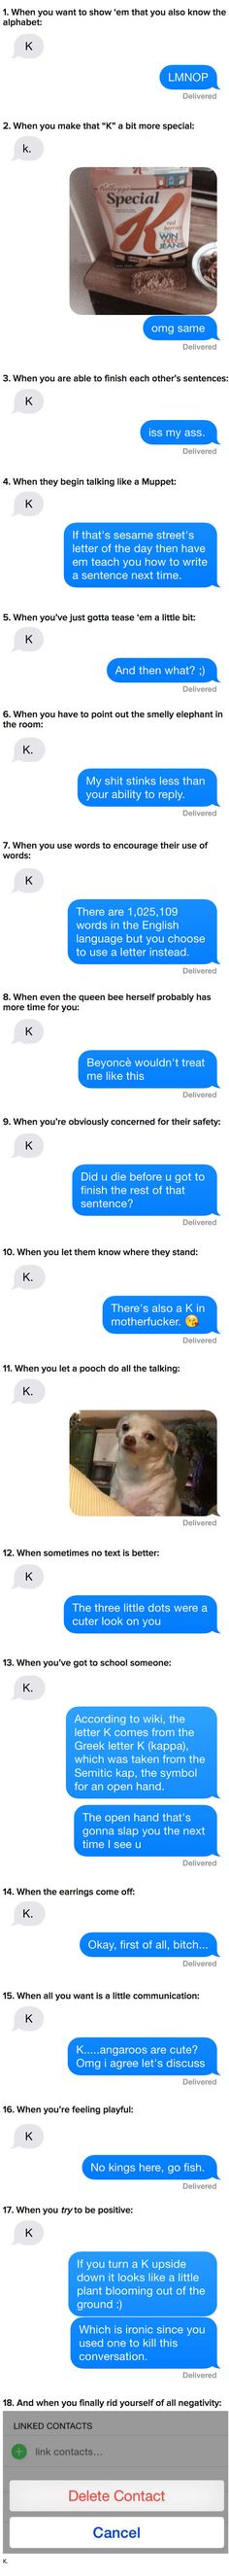 "18 Perfect Responses For When Someone Texts You ""K"" - 9GAG"